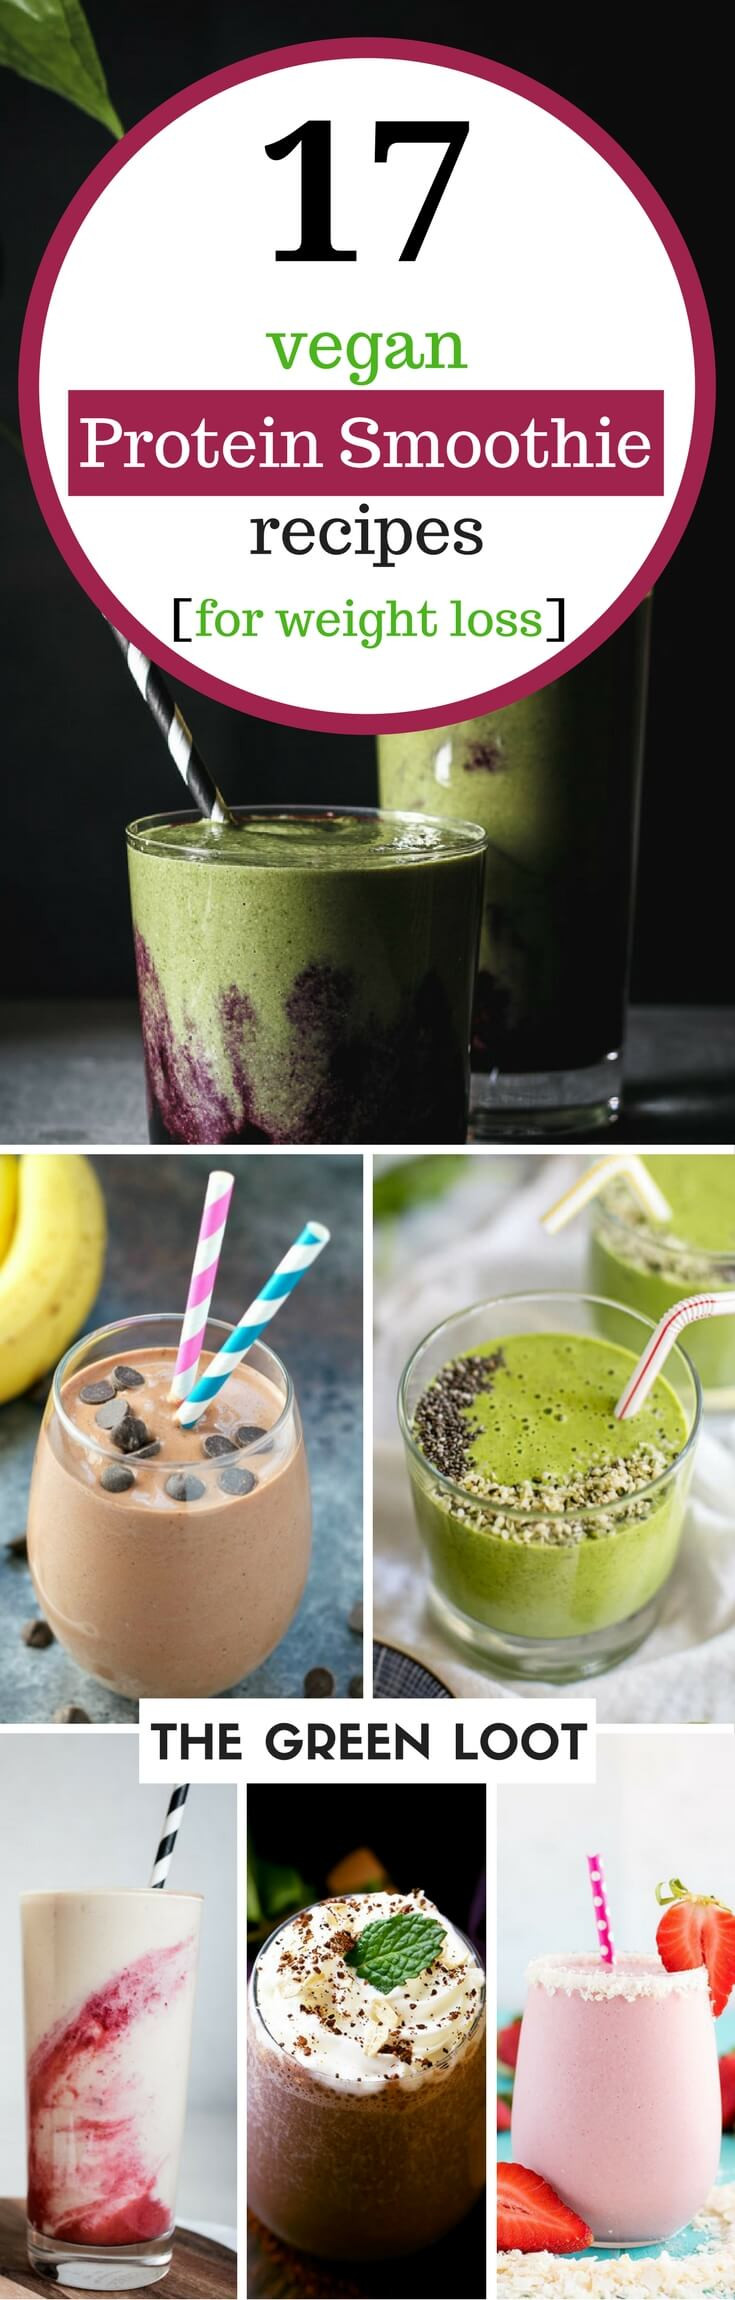 Protein Shakes Recipes For Weight Loss  17 Tasty Vegan Protein Smoothie Recipes for Weight Loss